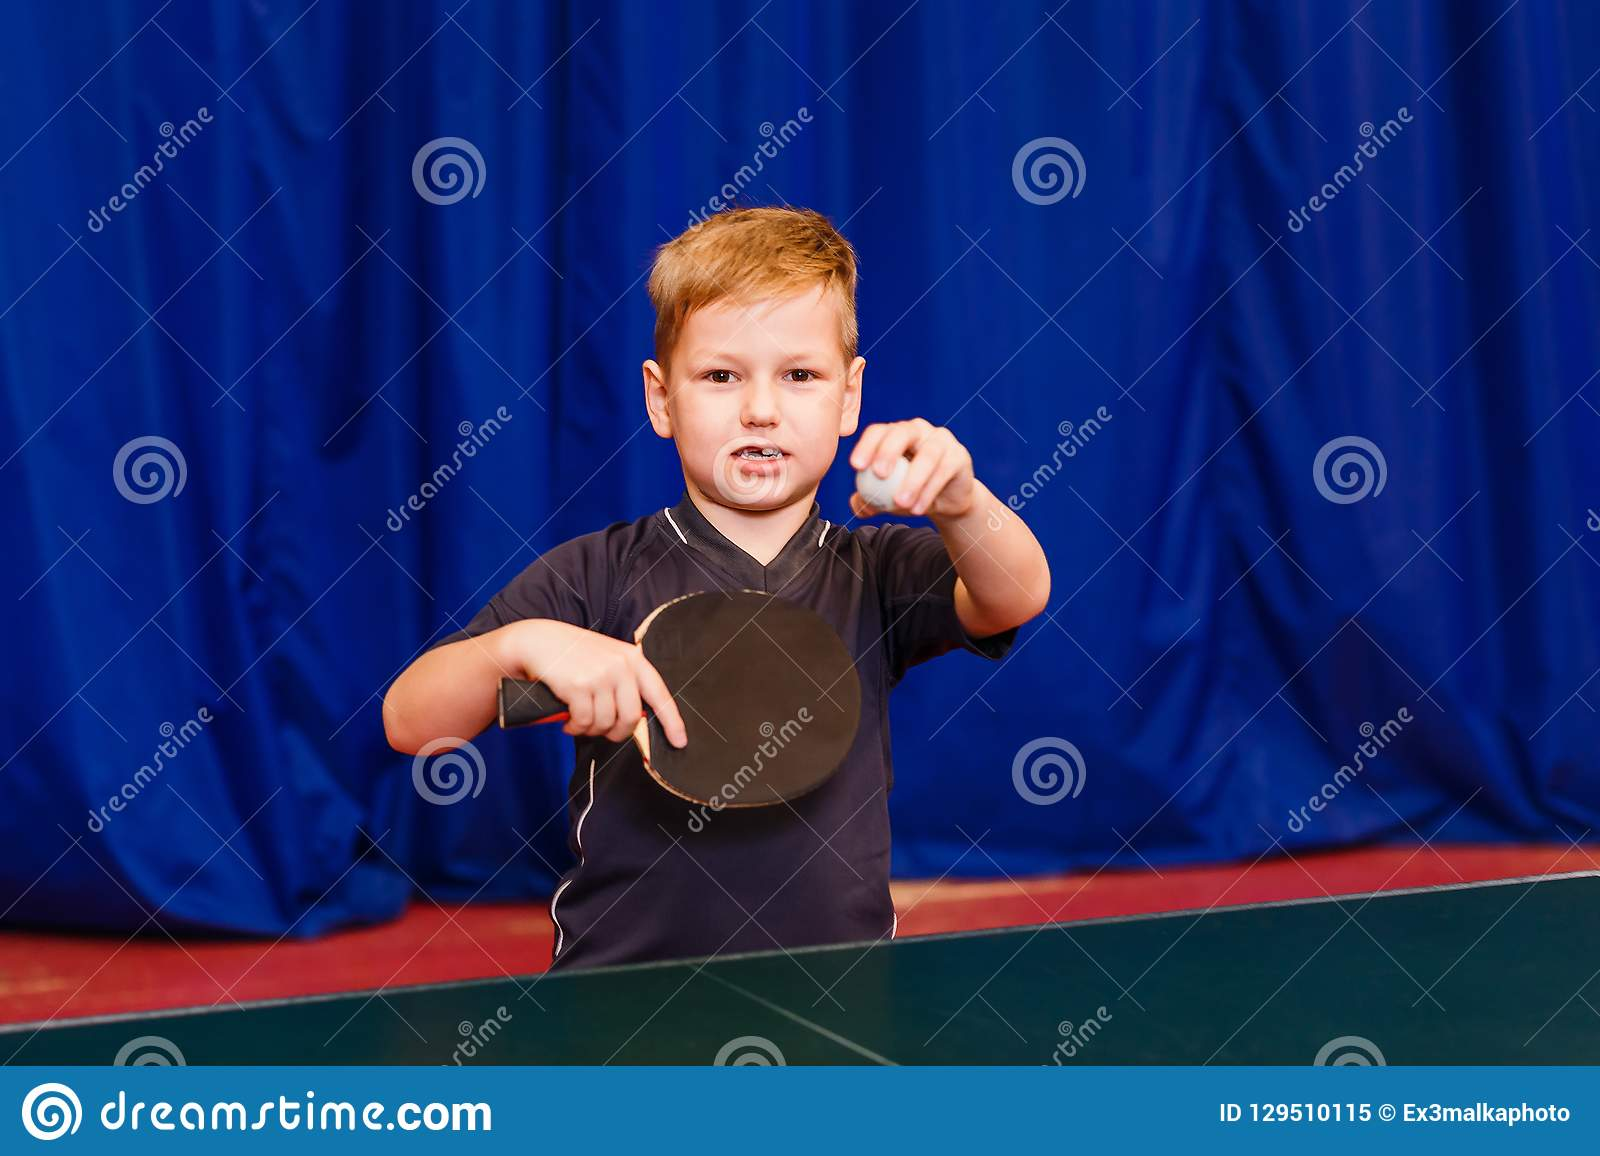 A child with a ball and a table tennis racket looks into the camera